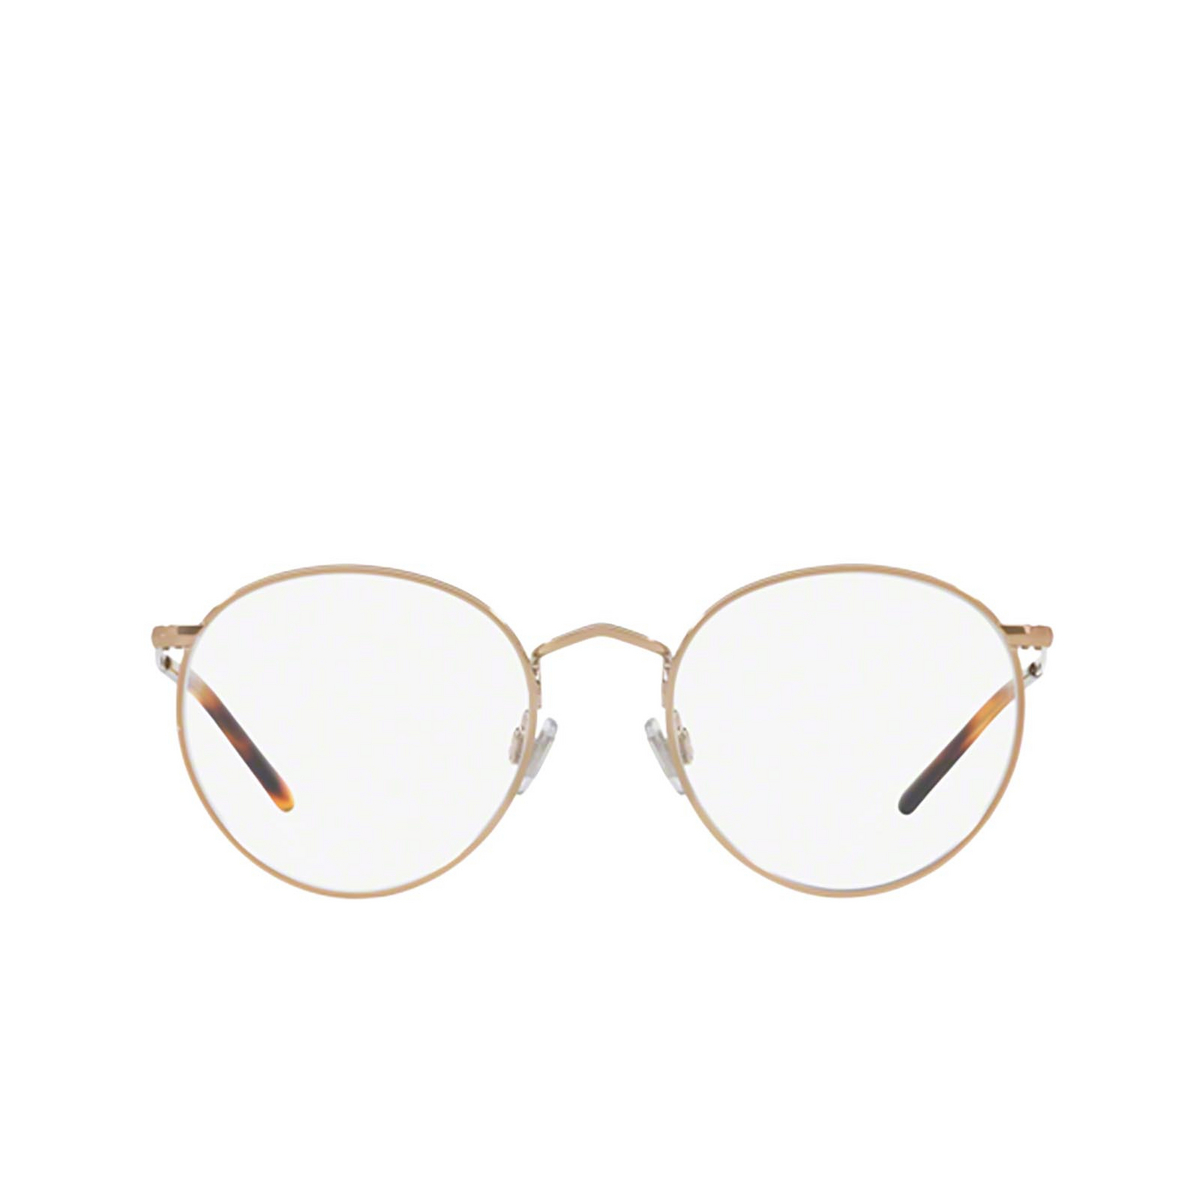 Polo Ralph Lauren® Round Eyeglasses: PH1179 color Shiny Dark Rose Gold 9334 - front view.